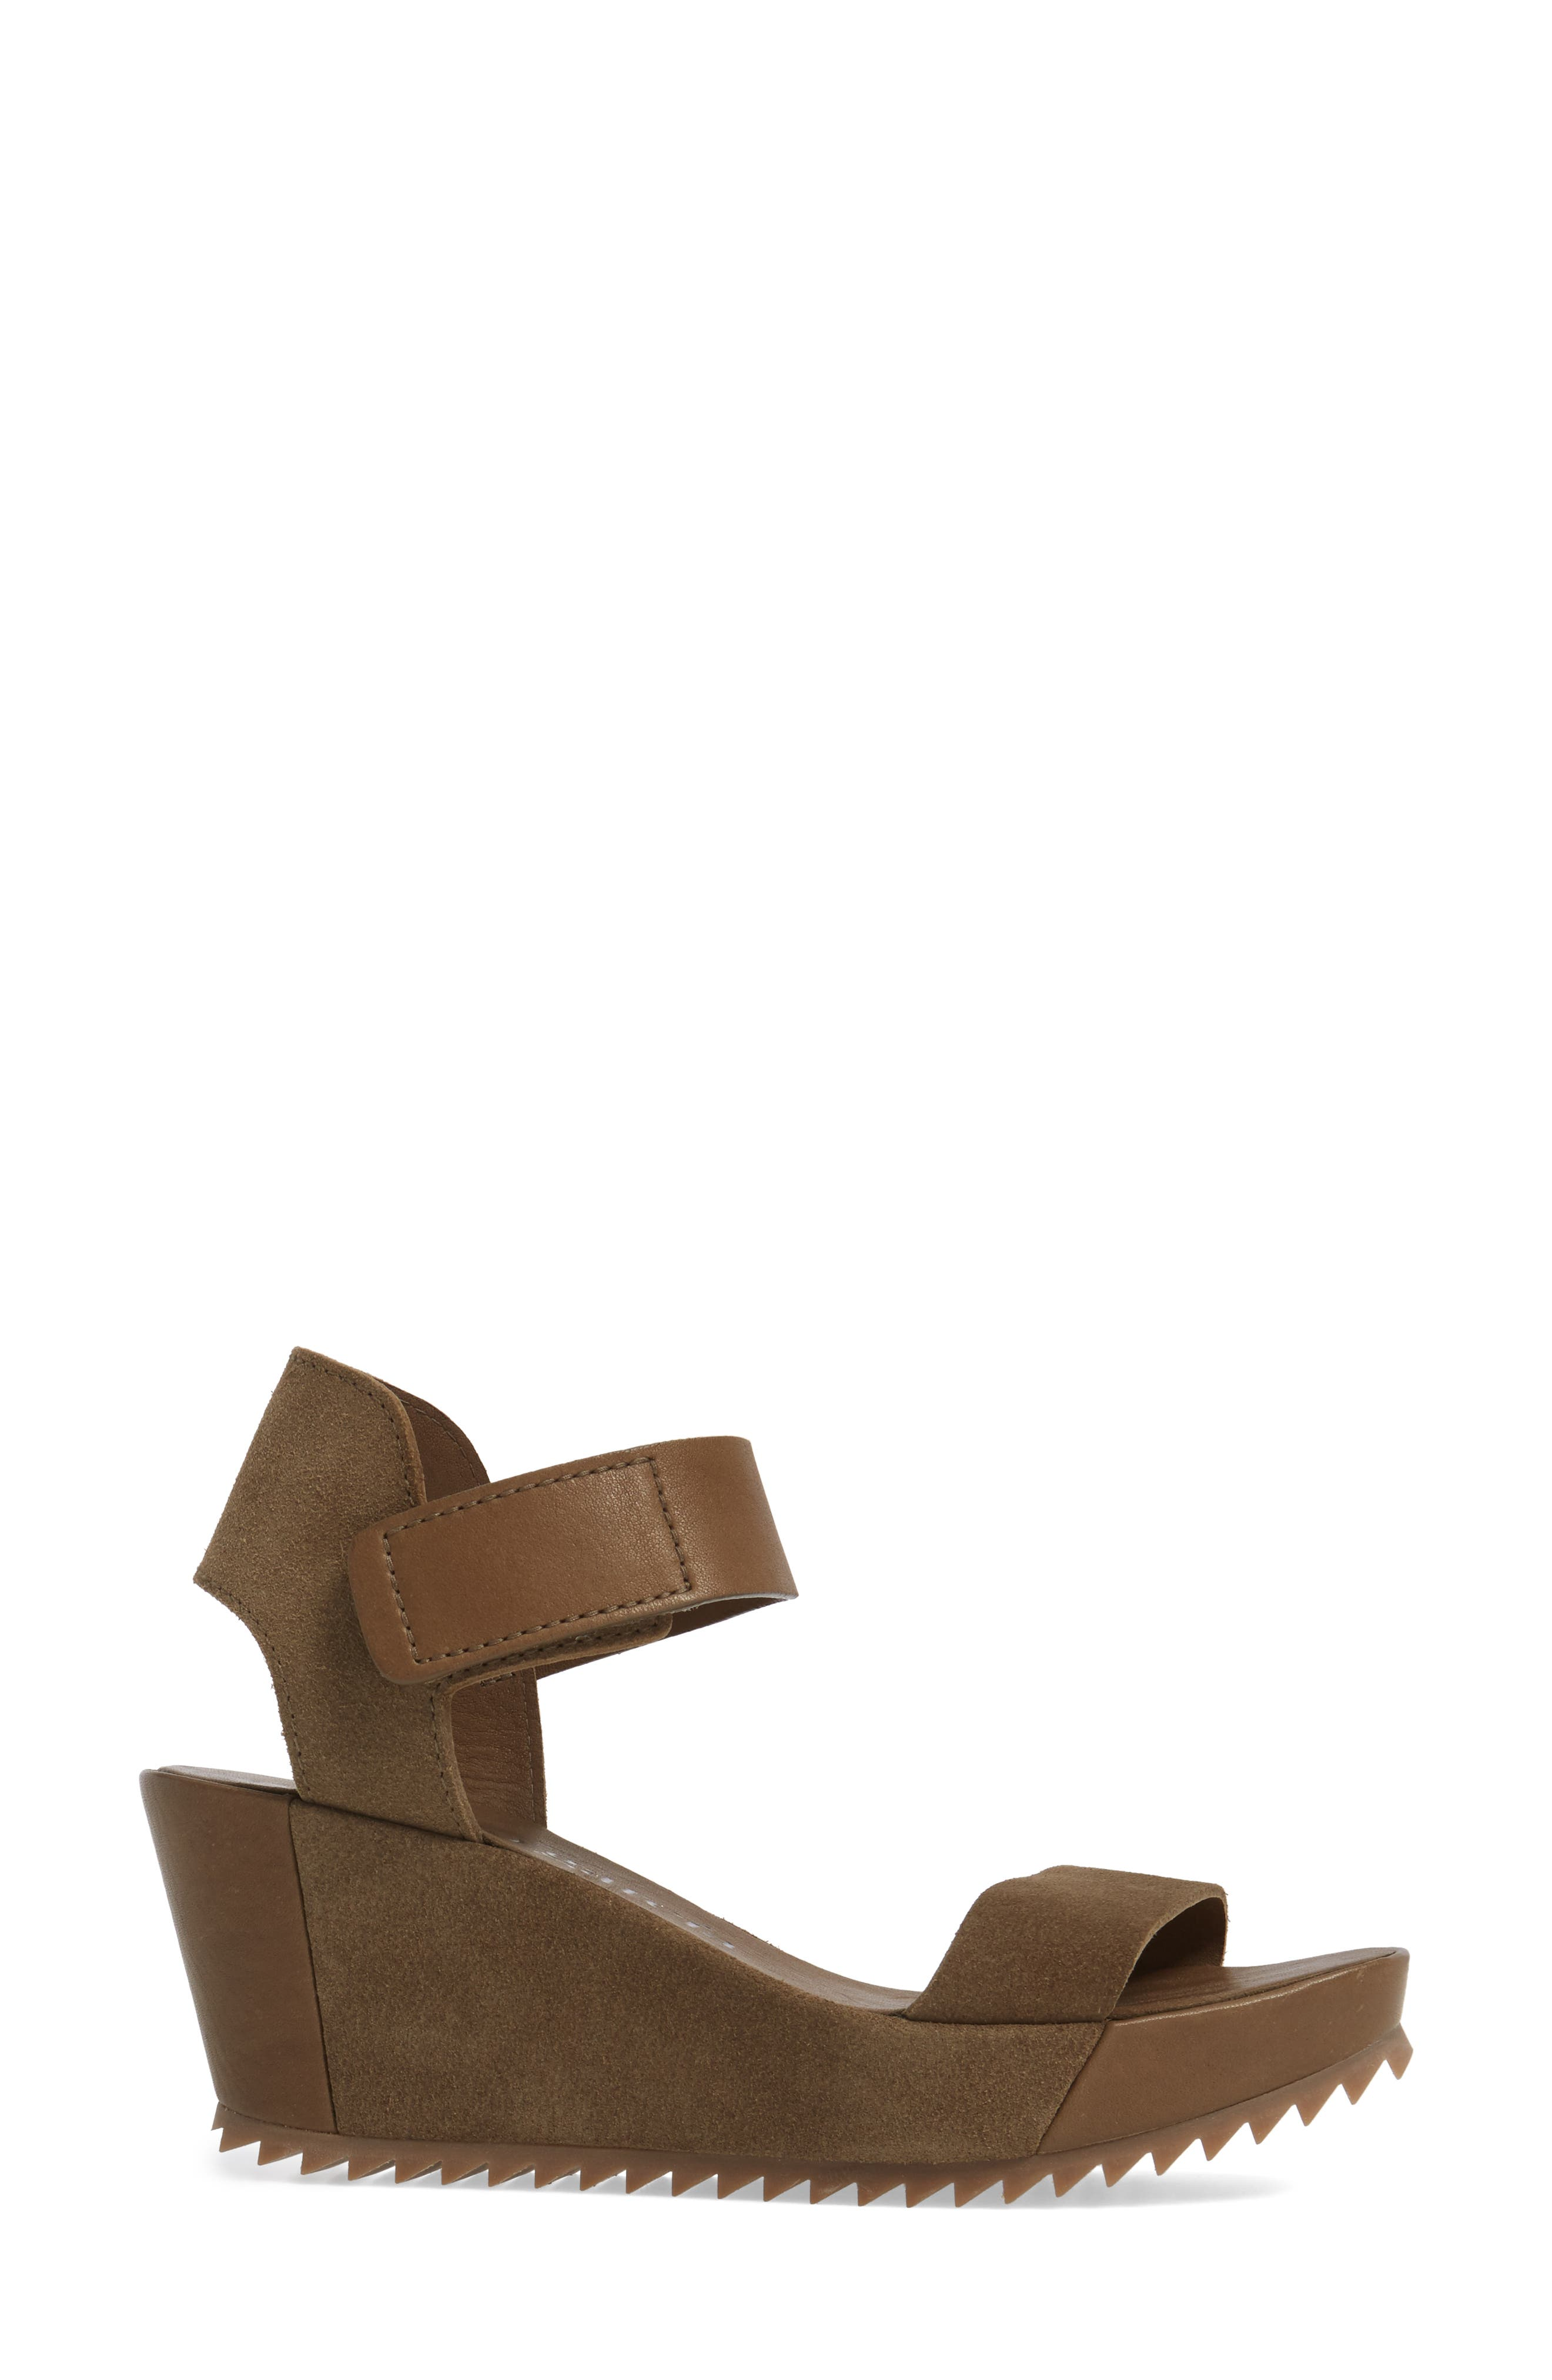 Francesca Wedge Sandal,                             Alternate thumbnail 3, color,                             250